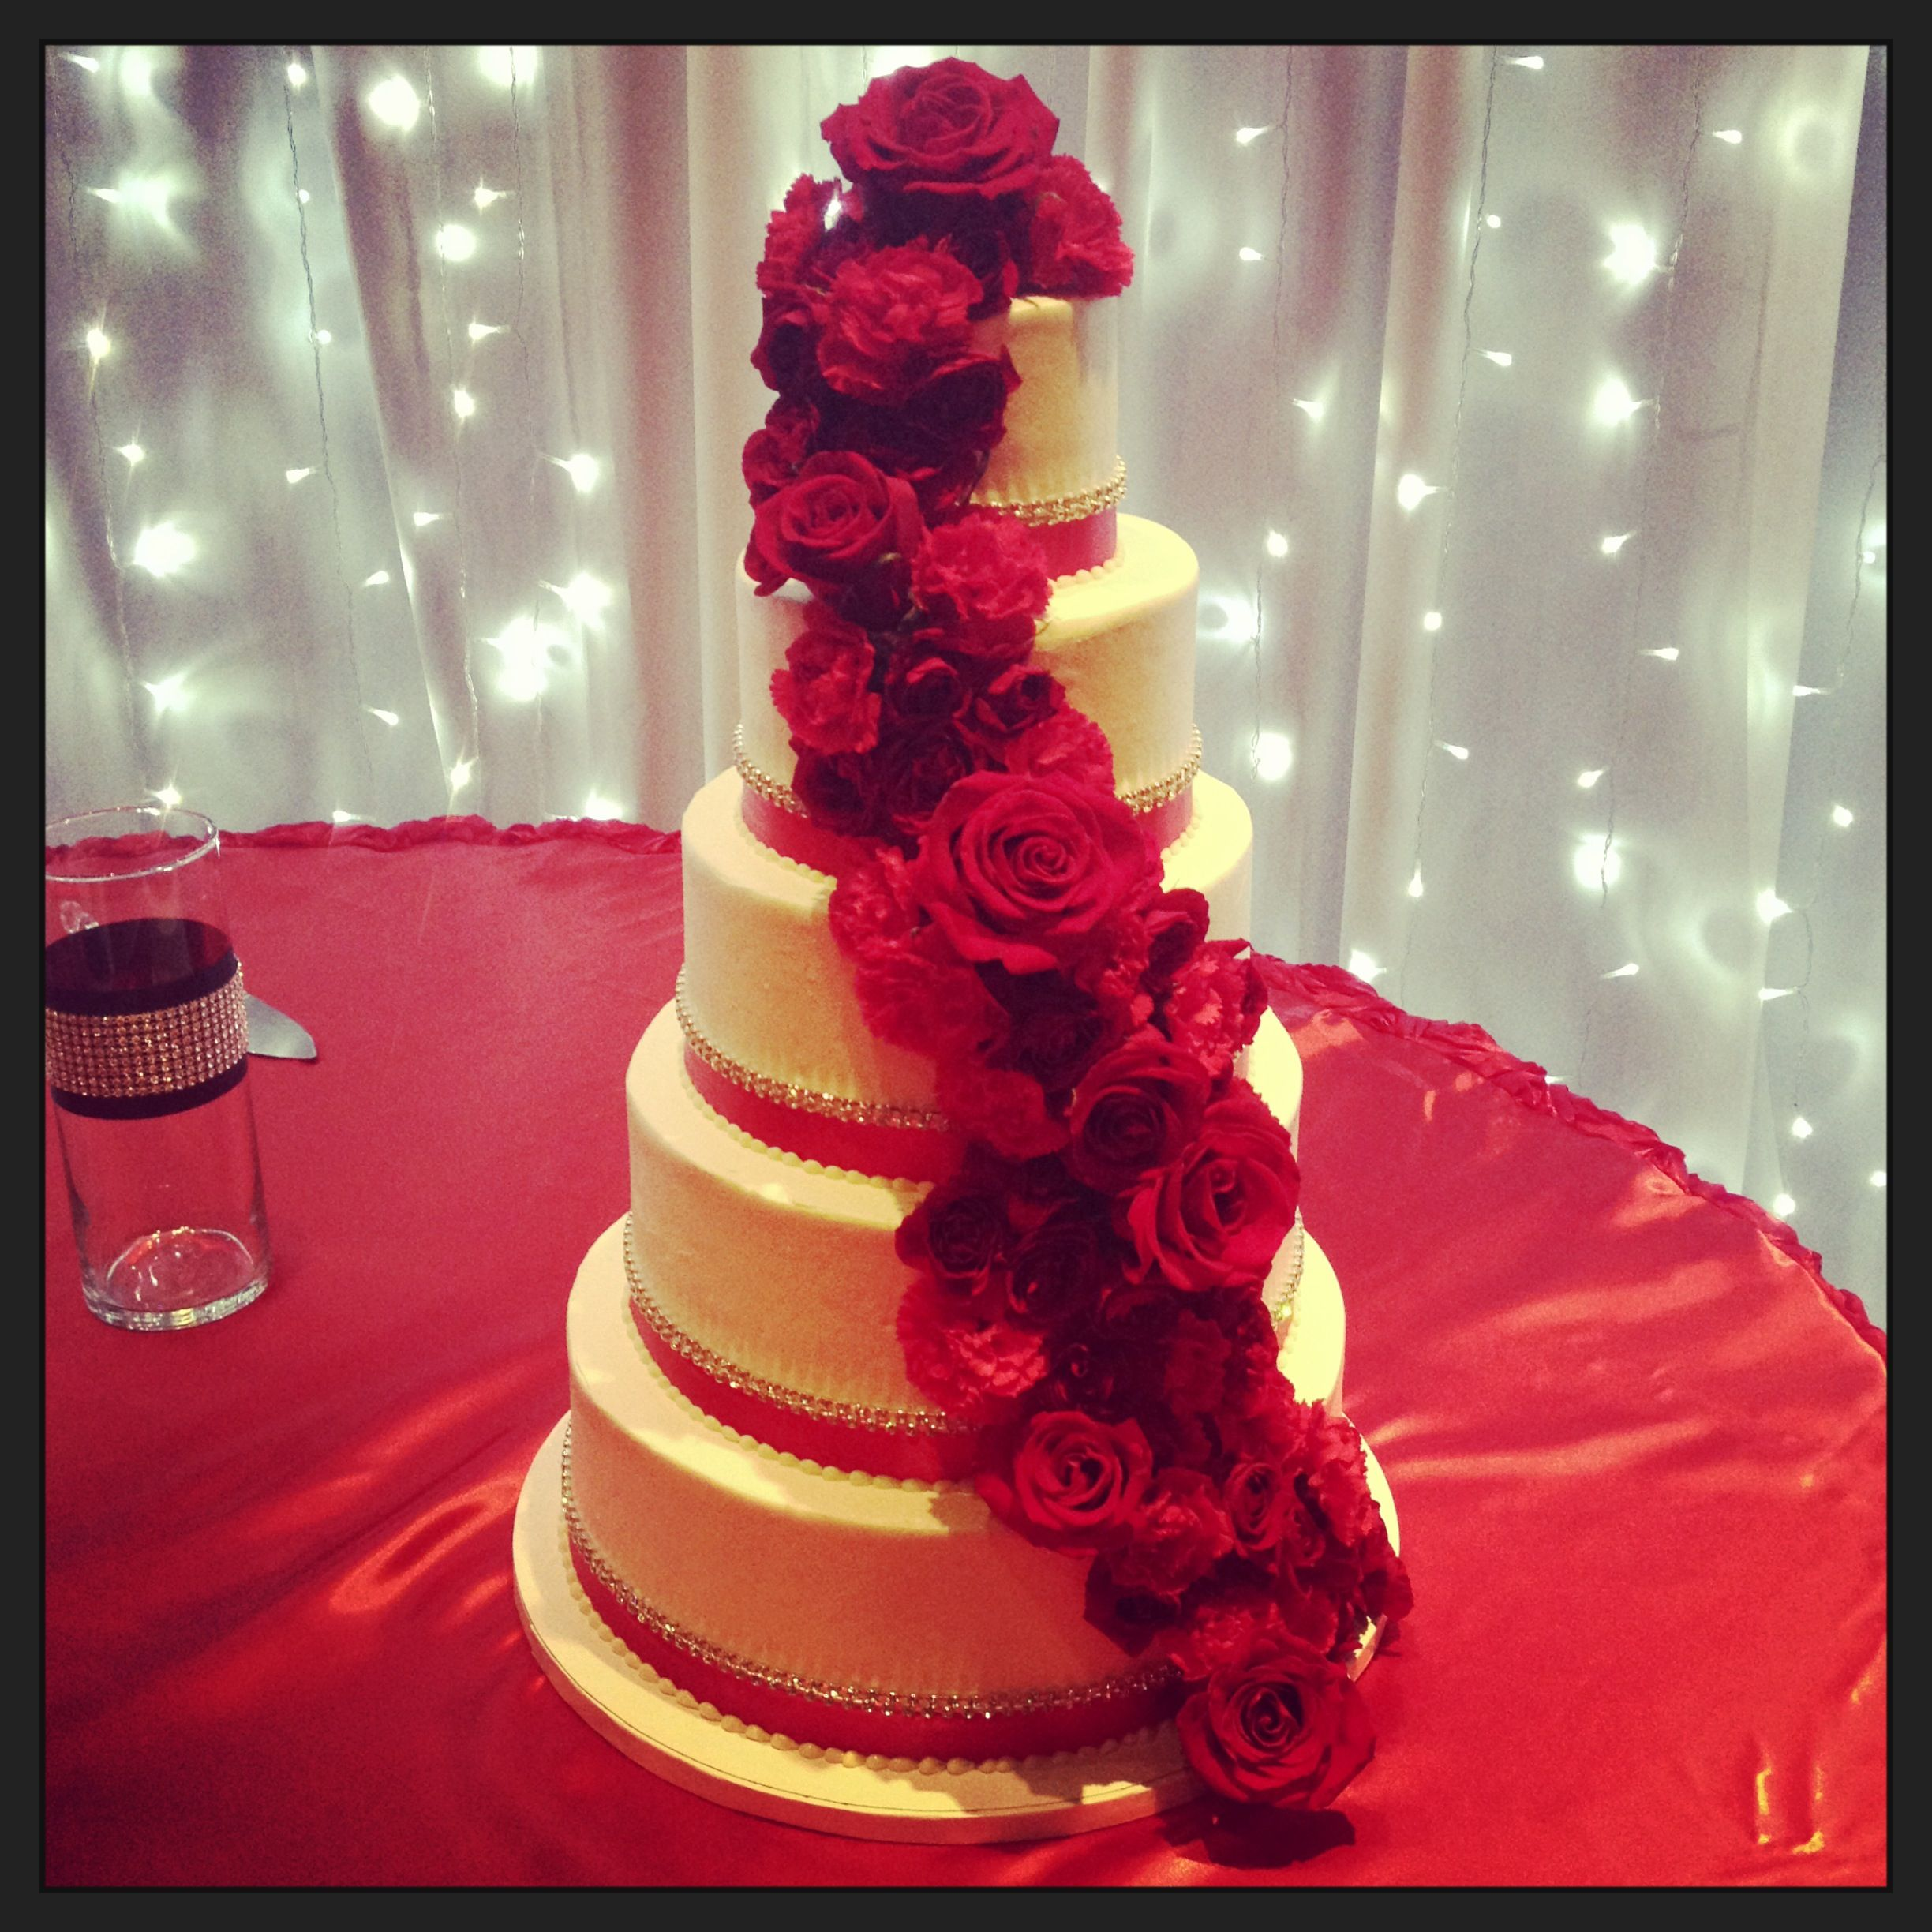 Buttercream wedding cake with diamond bling and fresh red